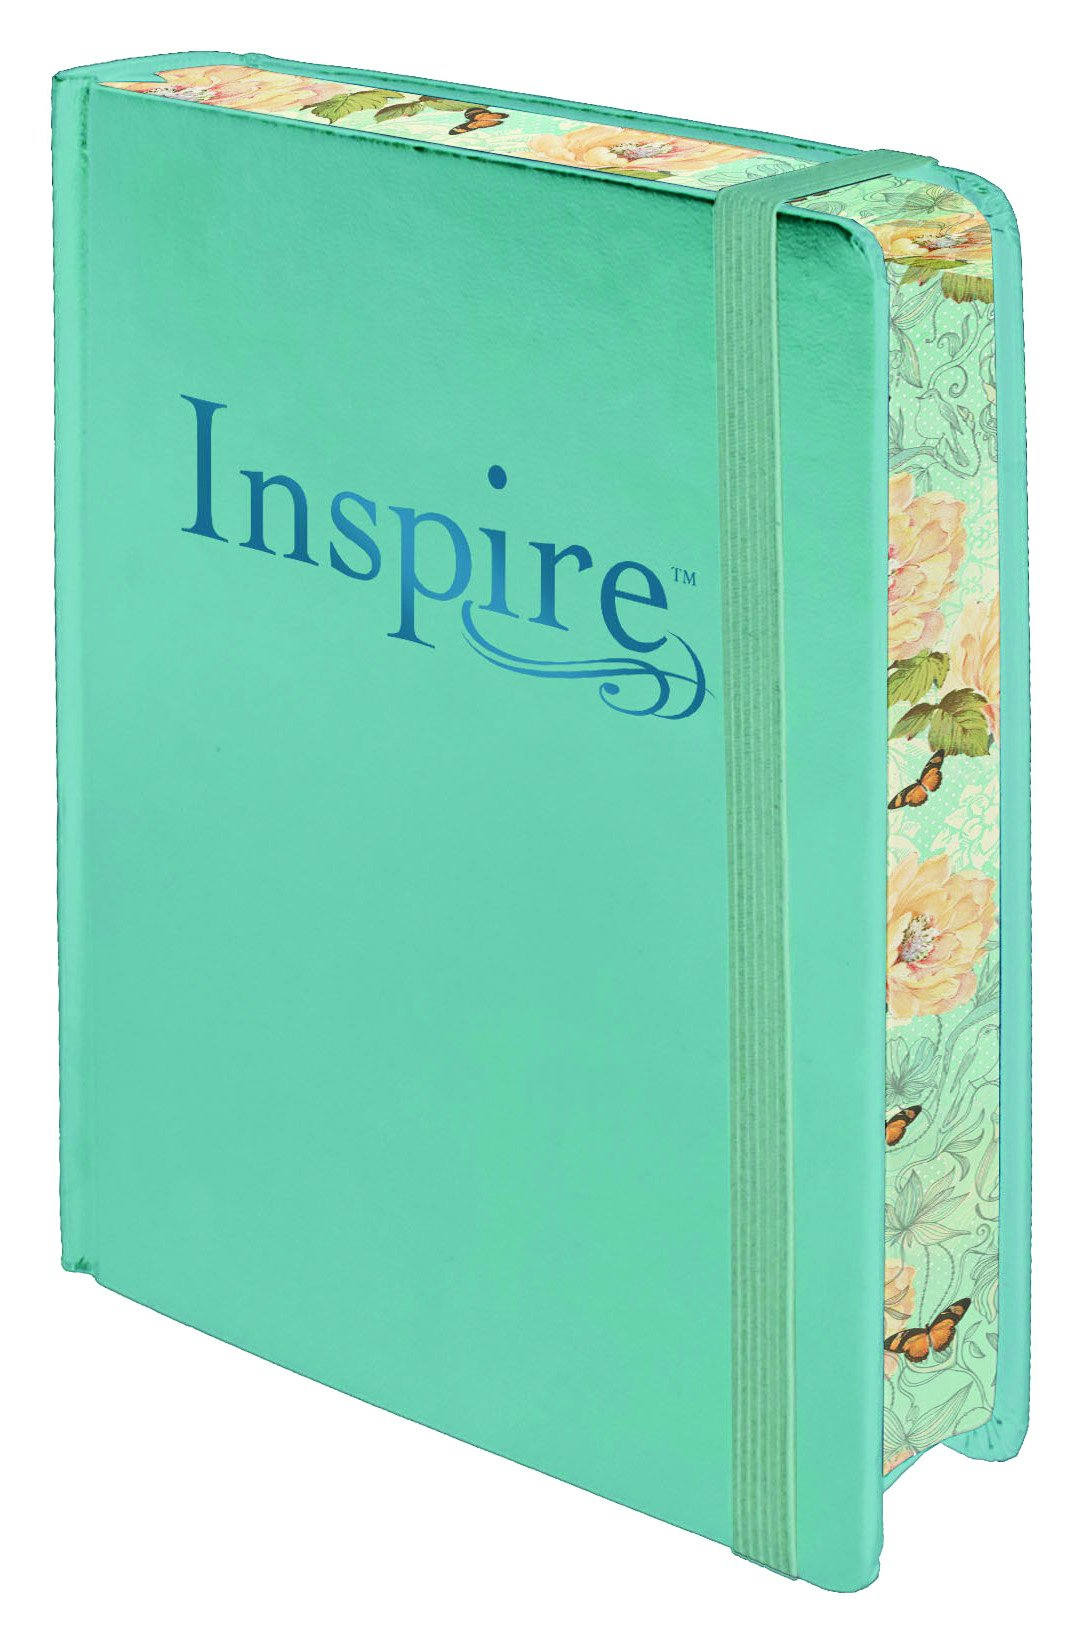 This is an Inspire Bible. It's amazing for Creative Journaling.The ISBN # for purchasing a copy on Amazon or any book retailer is:978-1496419859